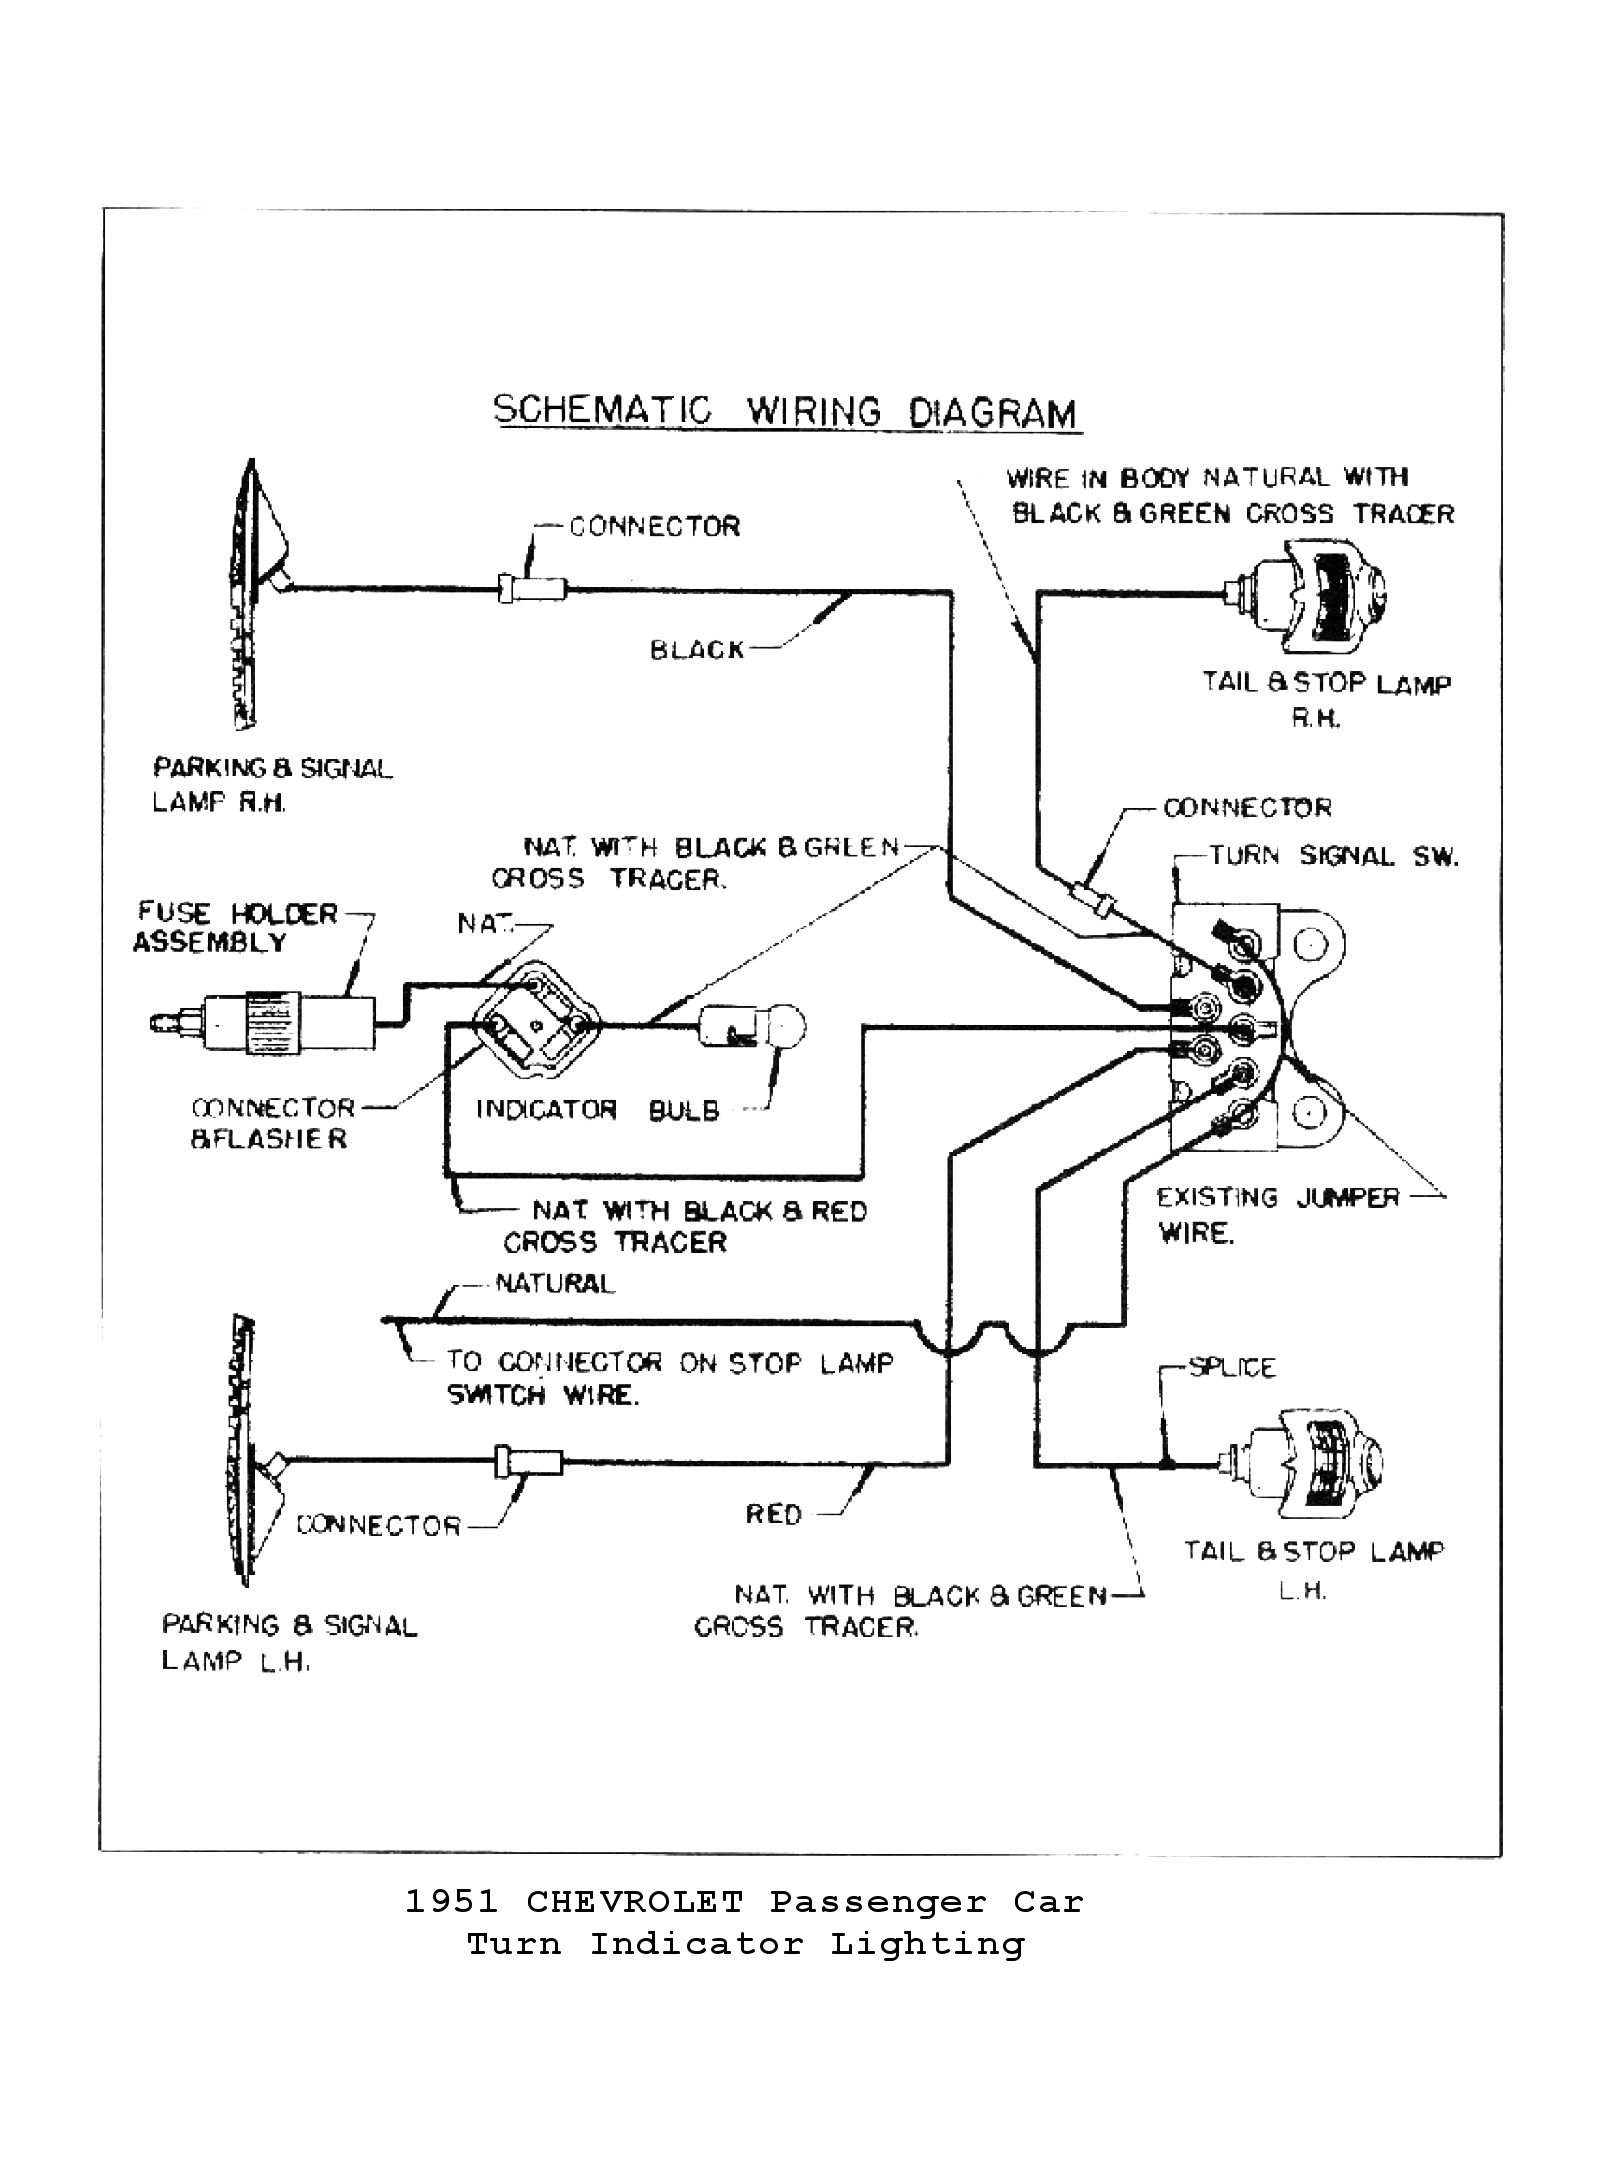 5152turnsignals chevy wiring diagrams wiring diagram 53 chevy truck at reclaimingppi.co